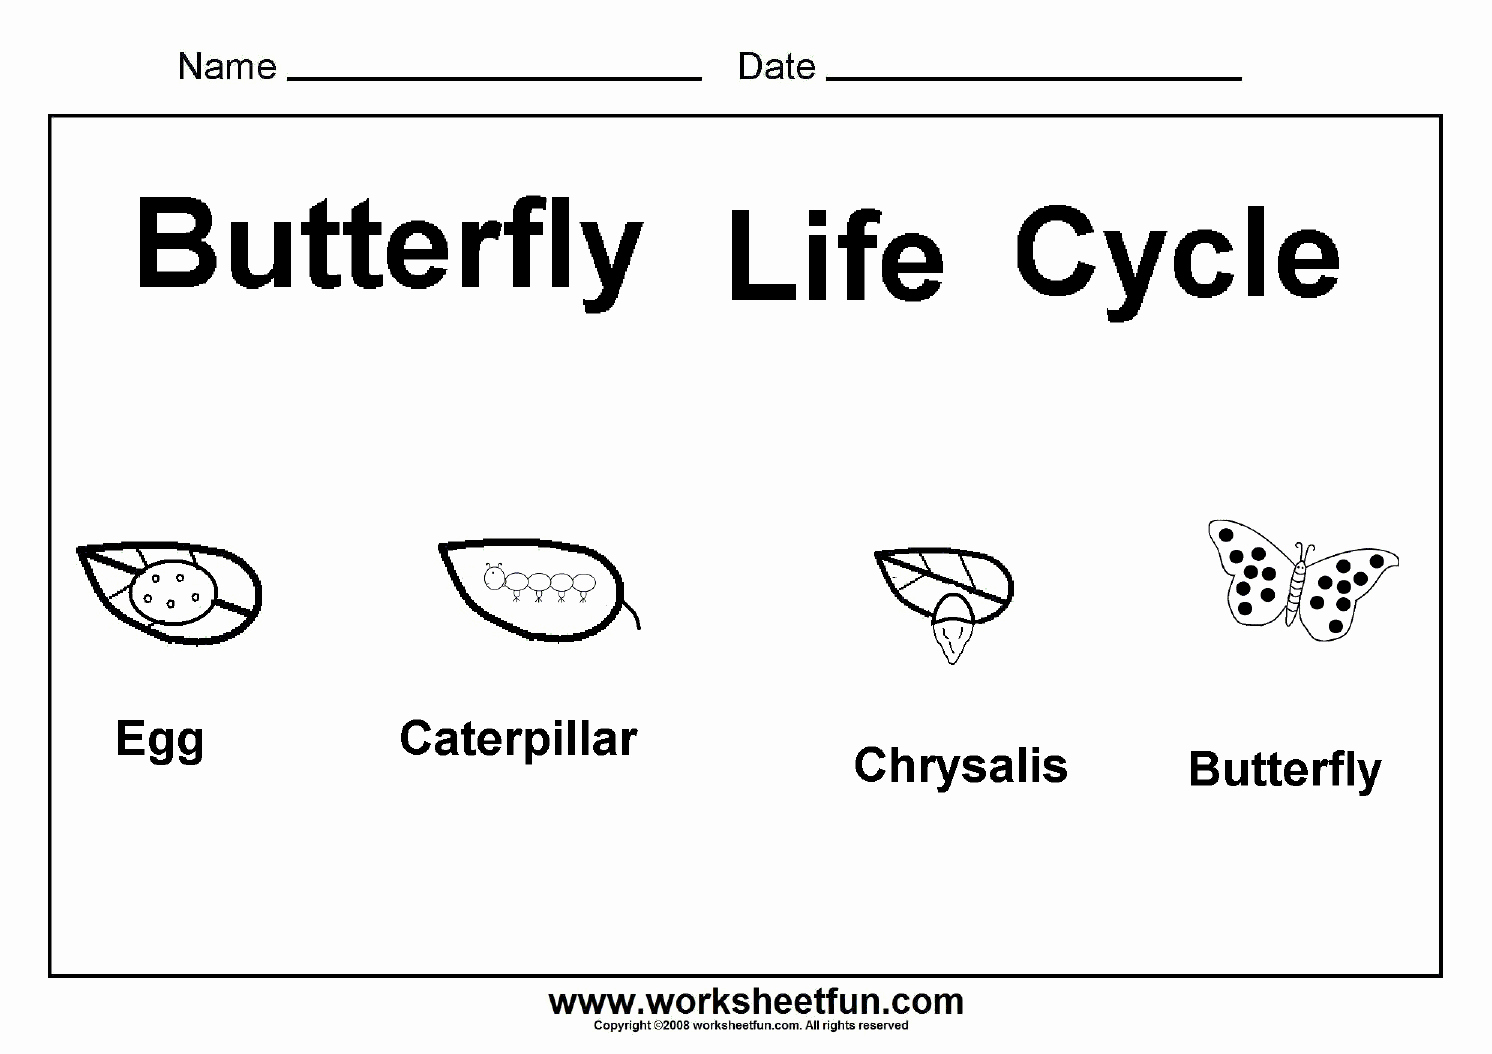 Butterfly Life Cycle Worksheet New butterfly Life Cycle – E Worksheet Free Printable